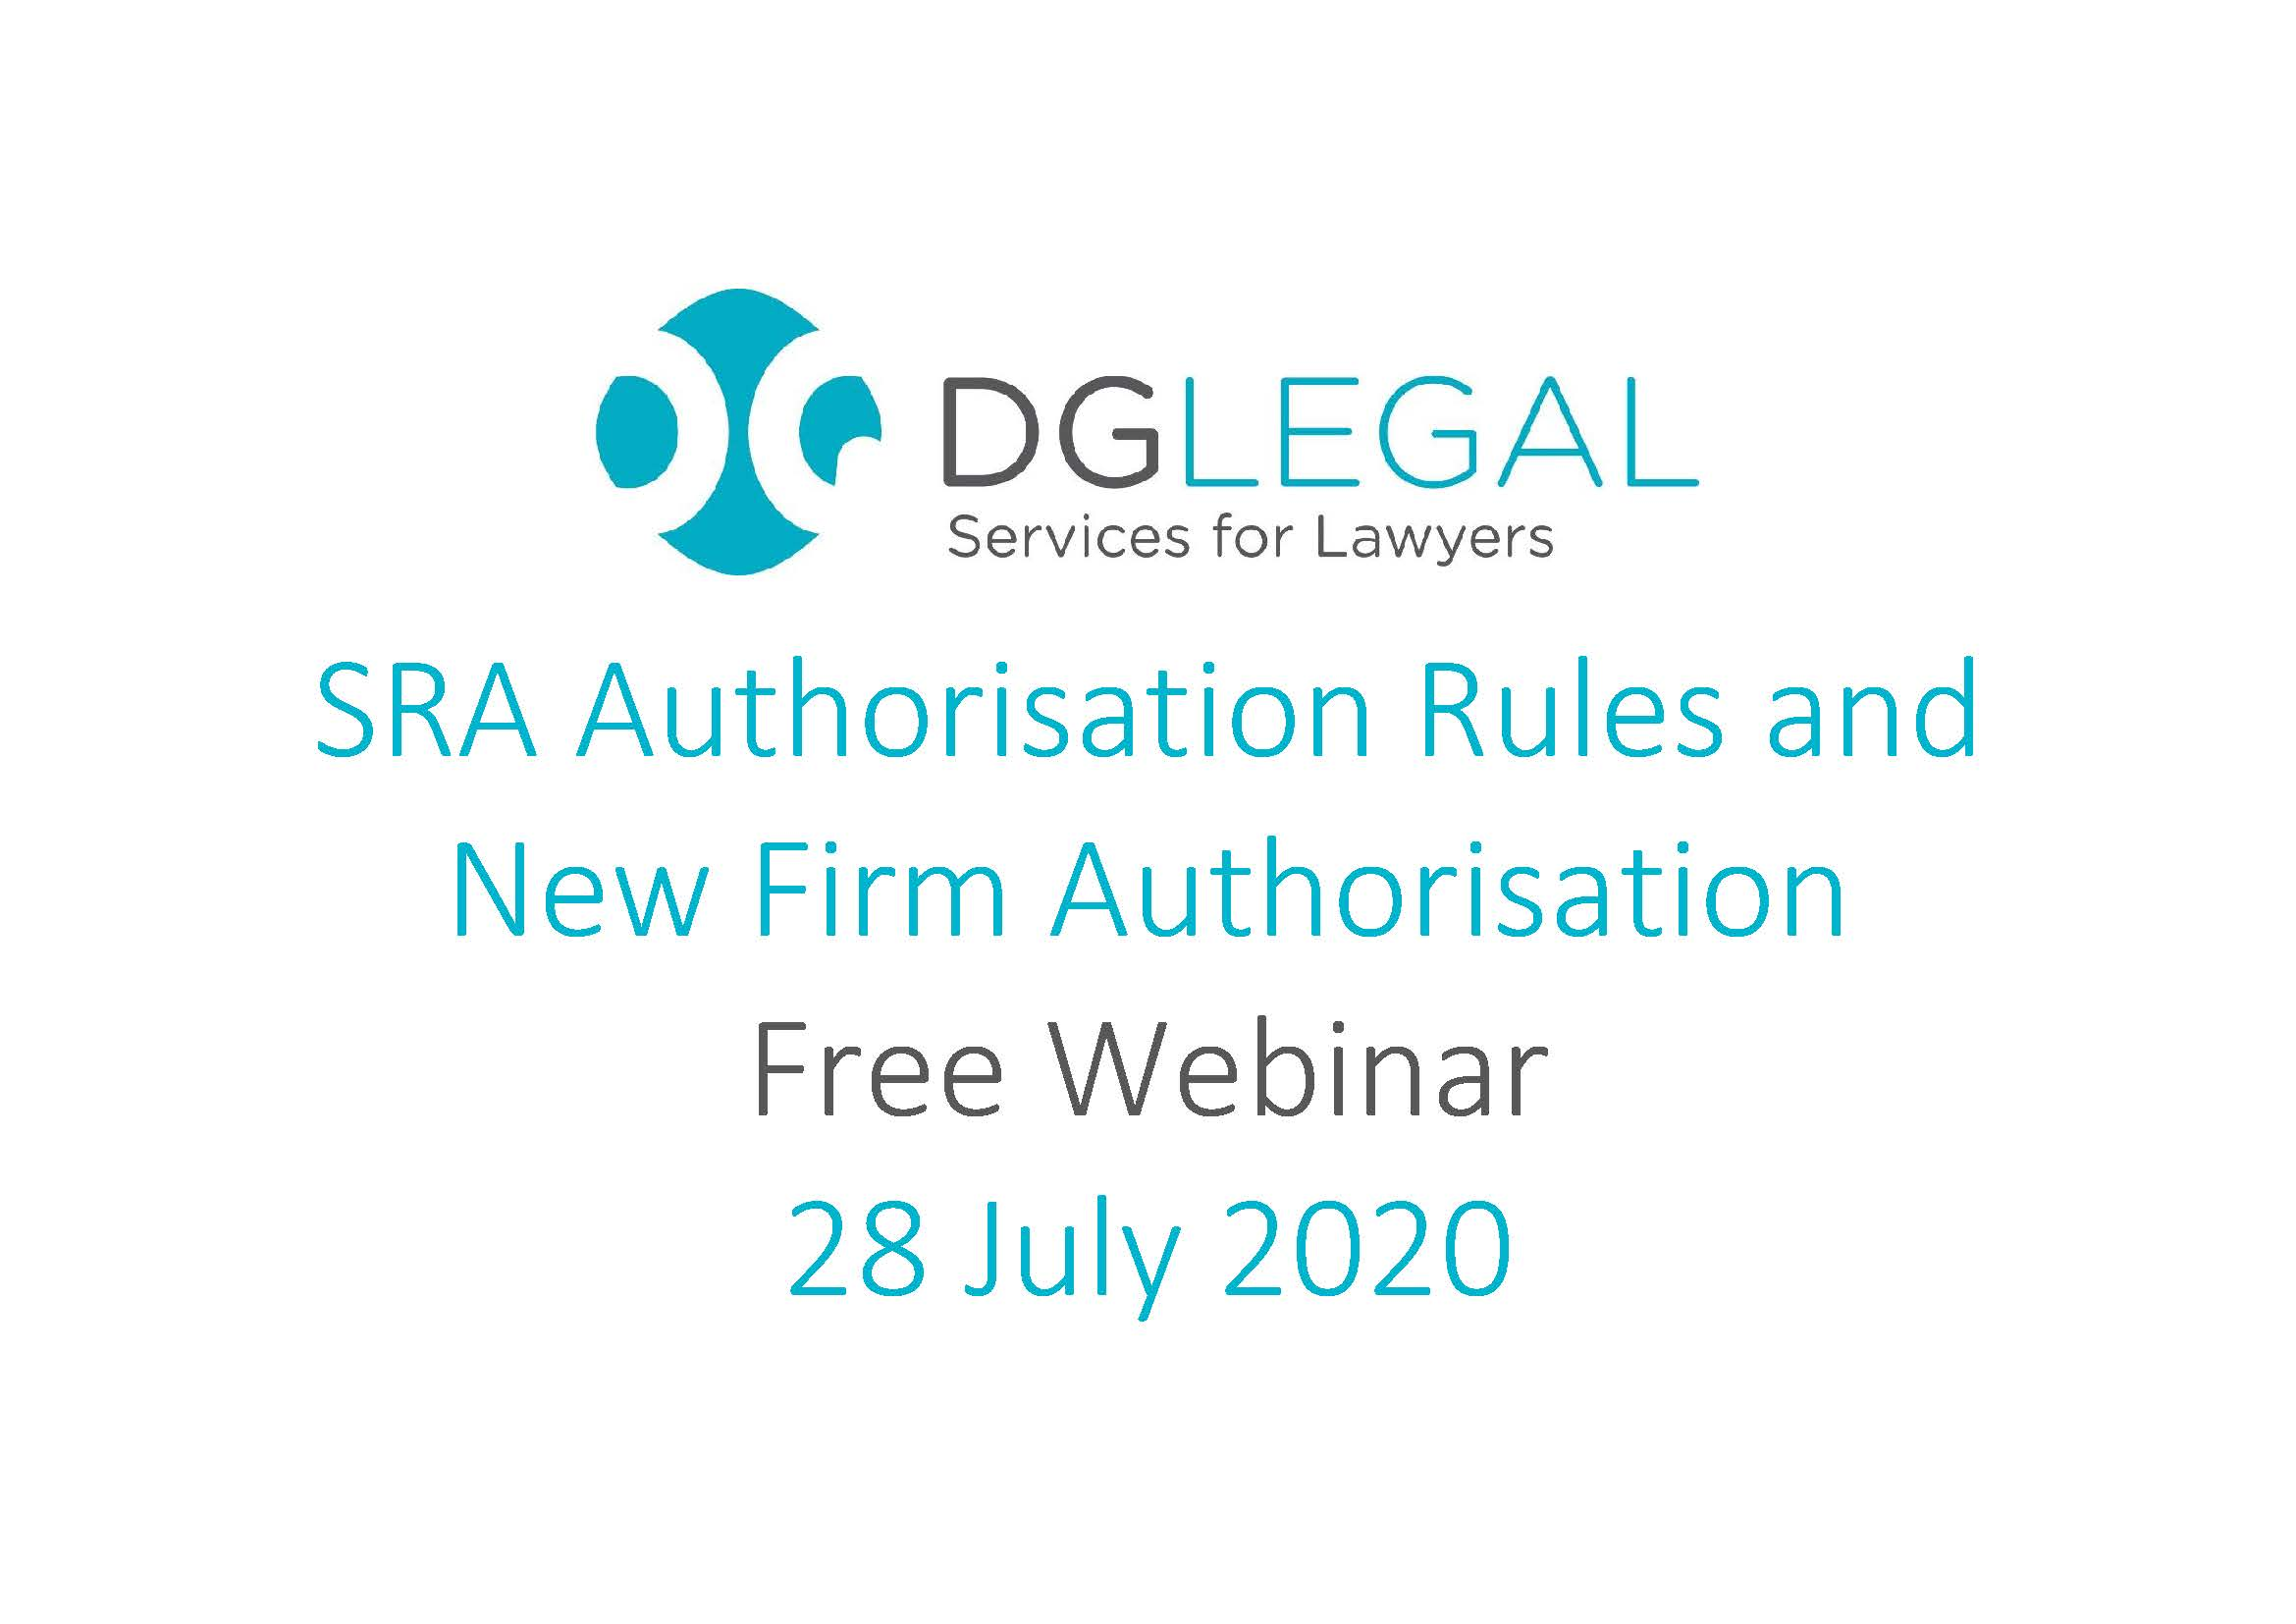 SRA Authorisation Rules and New Firm Authorisation Webinar